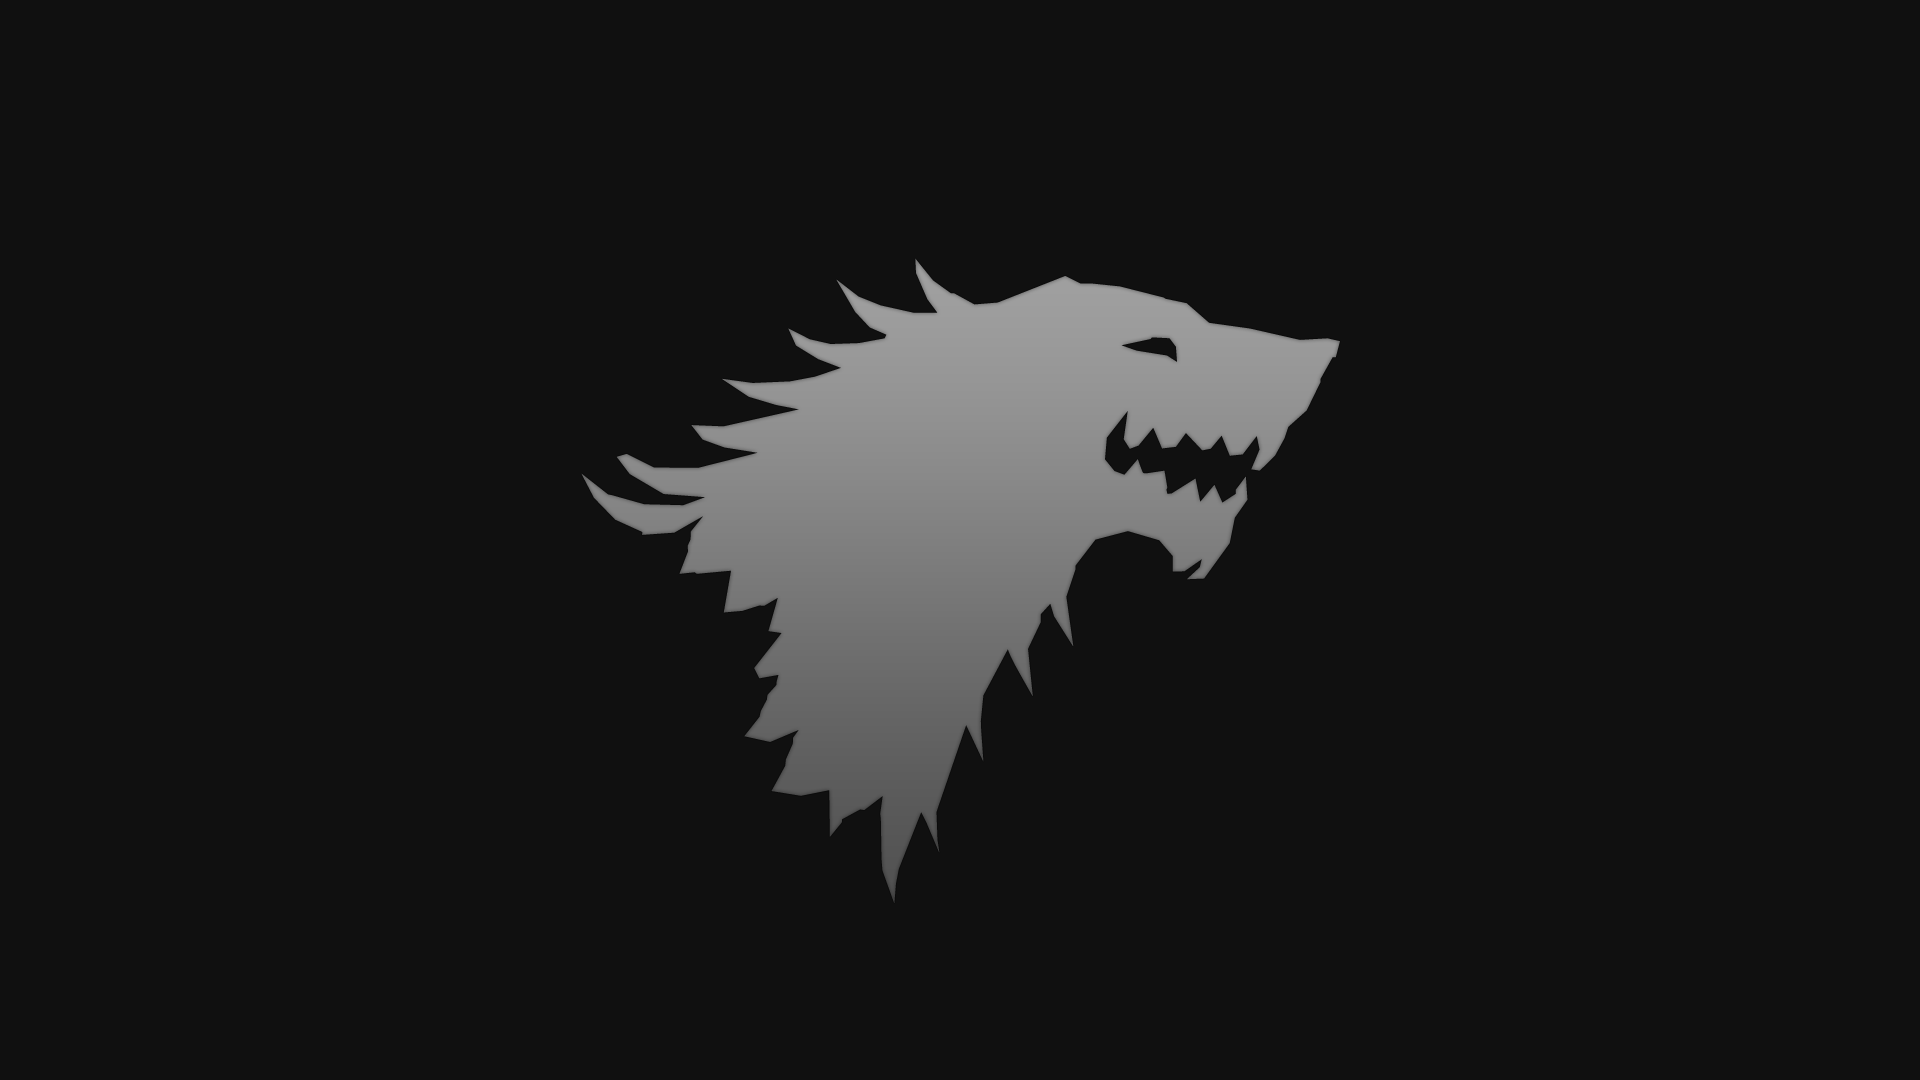 Great house stark wallpaper full hd pictures for Full hd house image